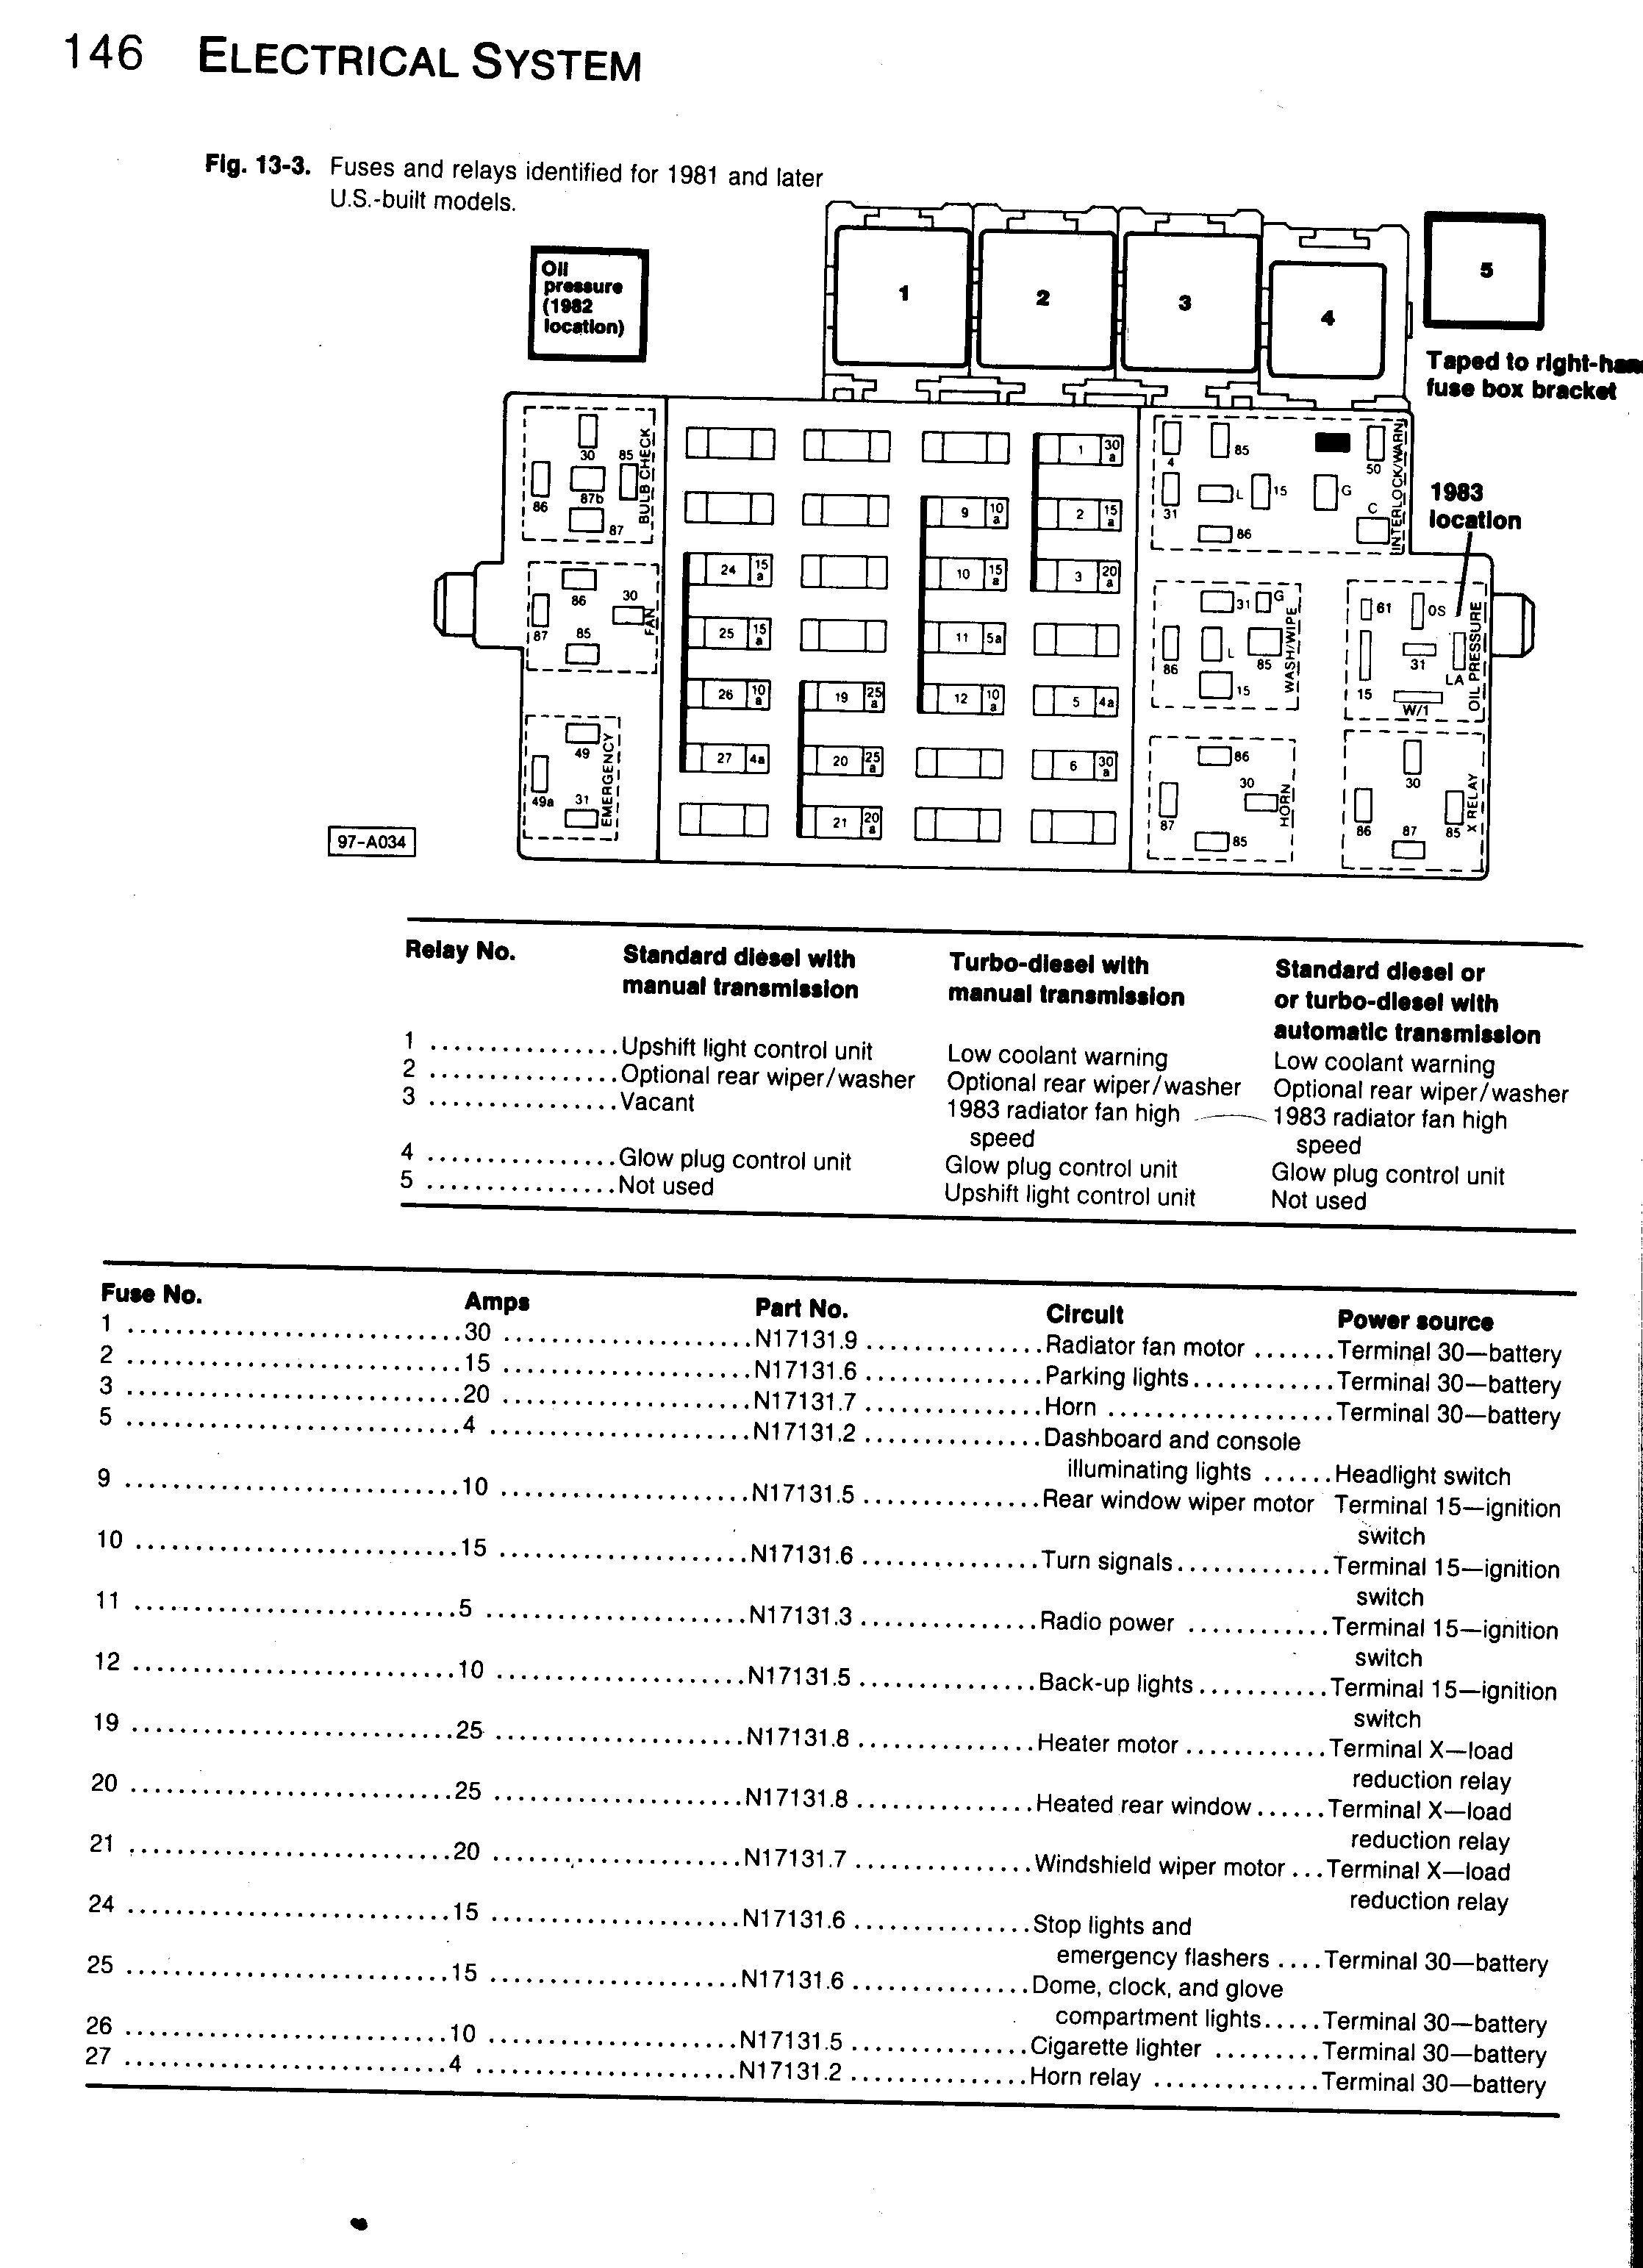 63 vw fuse diagram expert schematics diagram rh atcobennettrecoveries com  1998 Bravada Fuse Box Diagram 1996 E350 Underhood Fuse